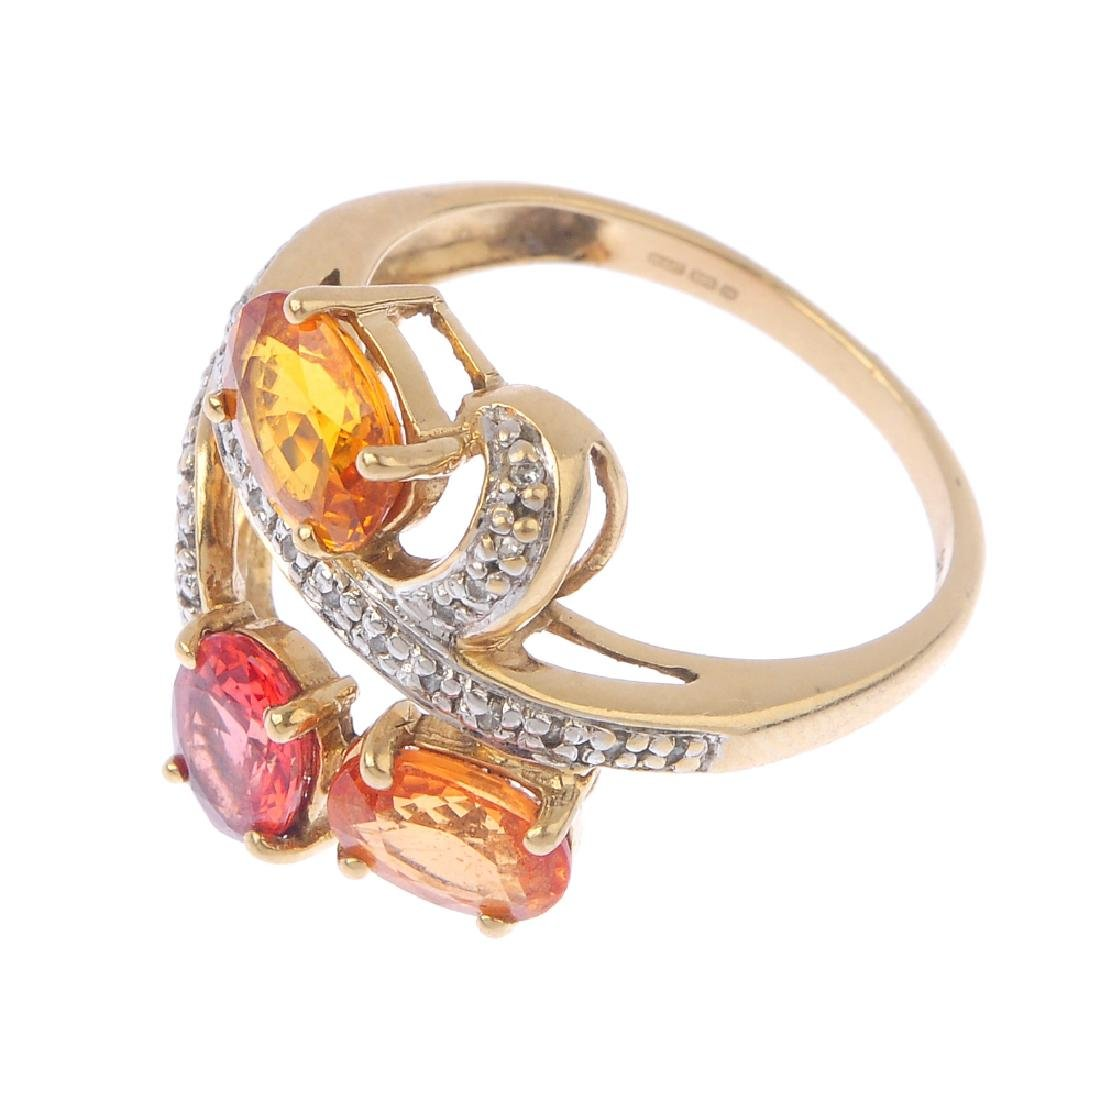 A 9ct gold diamond and gem-set ring. The oval-shape - 3